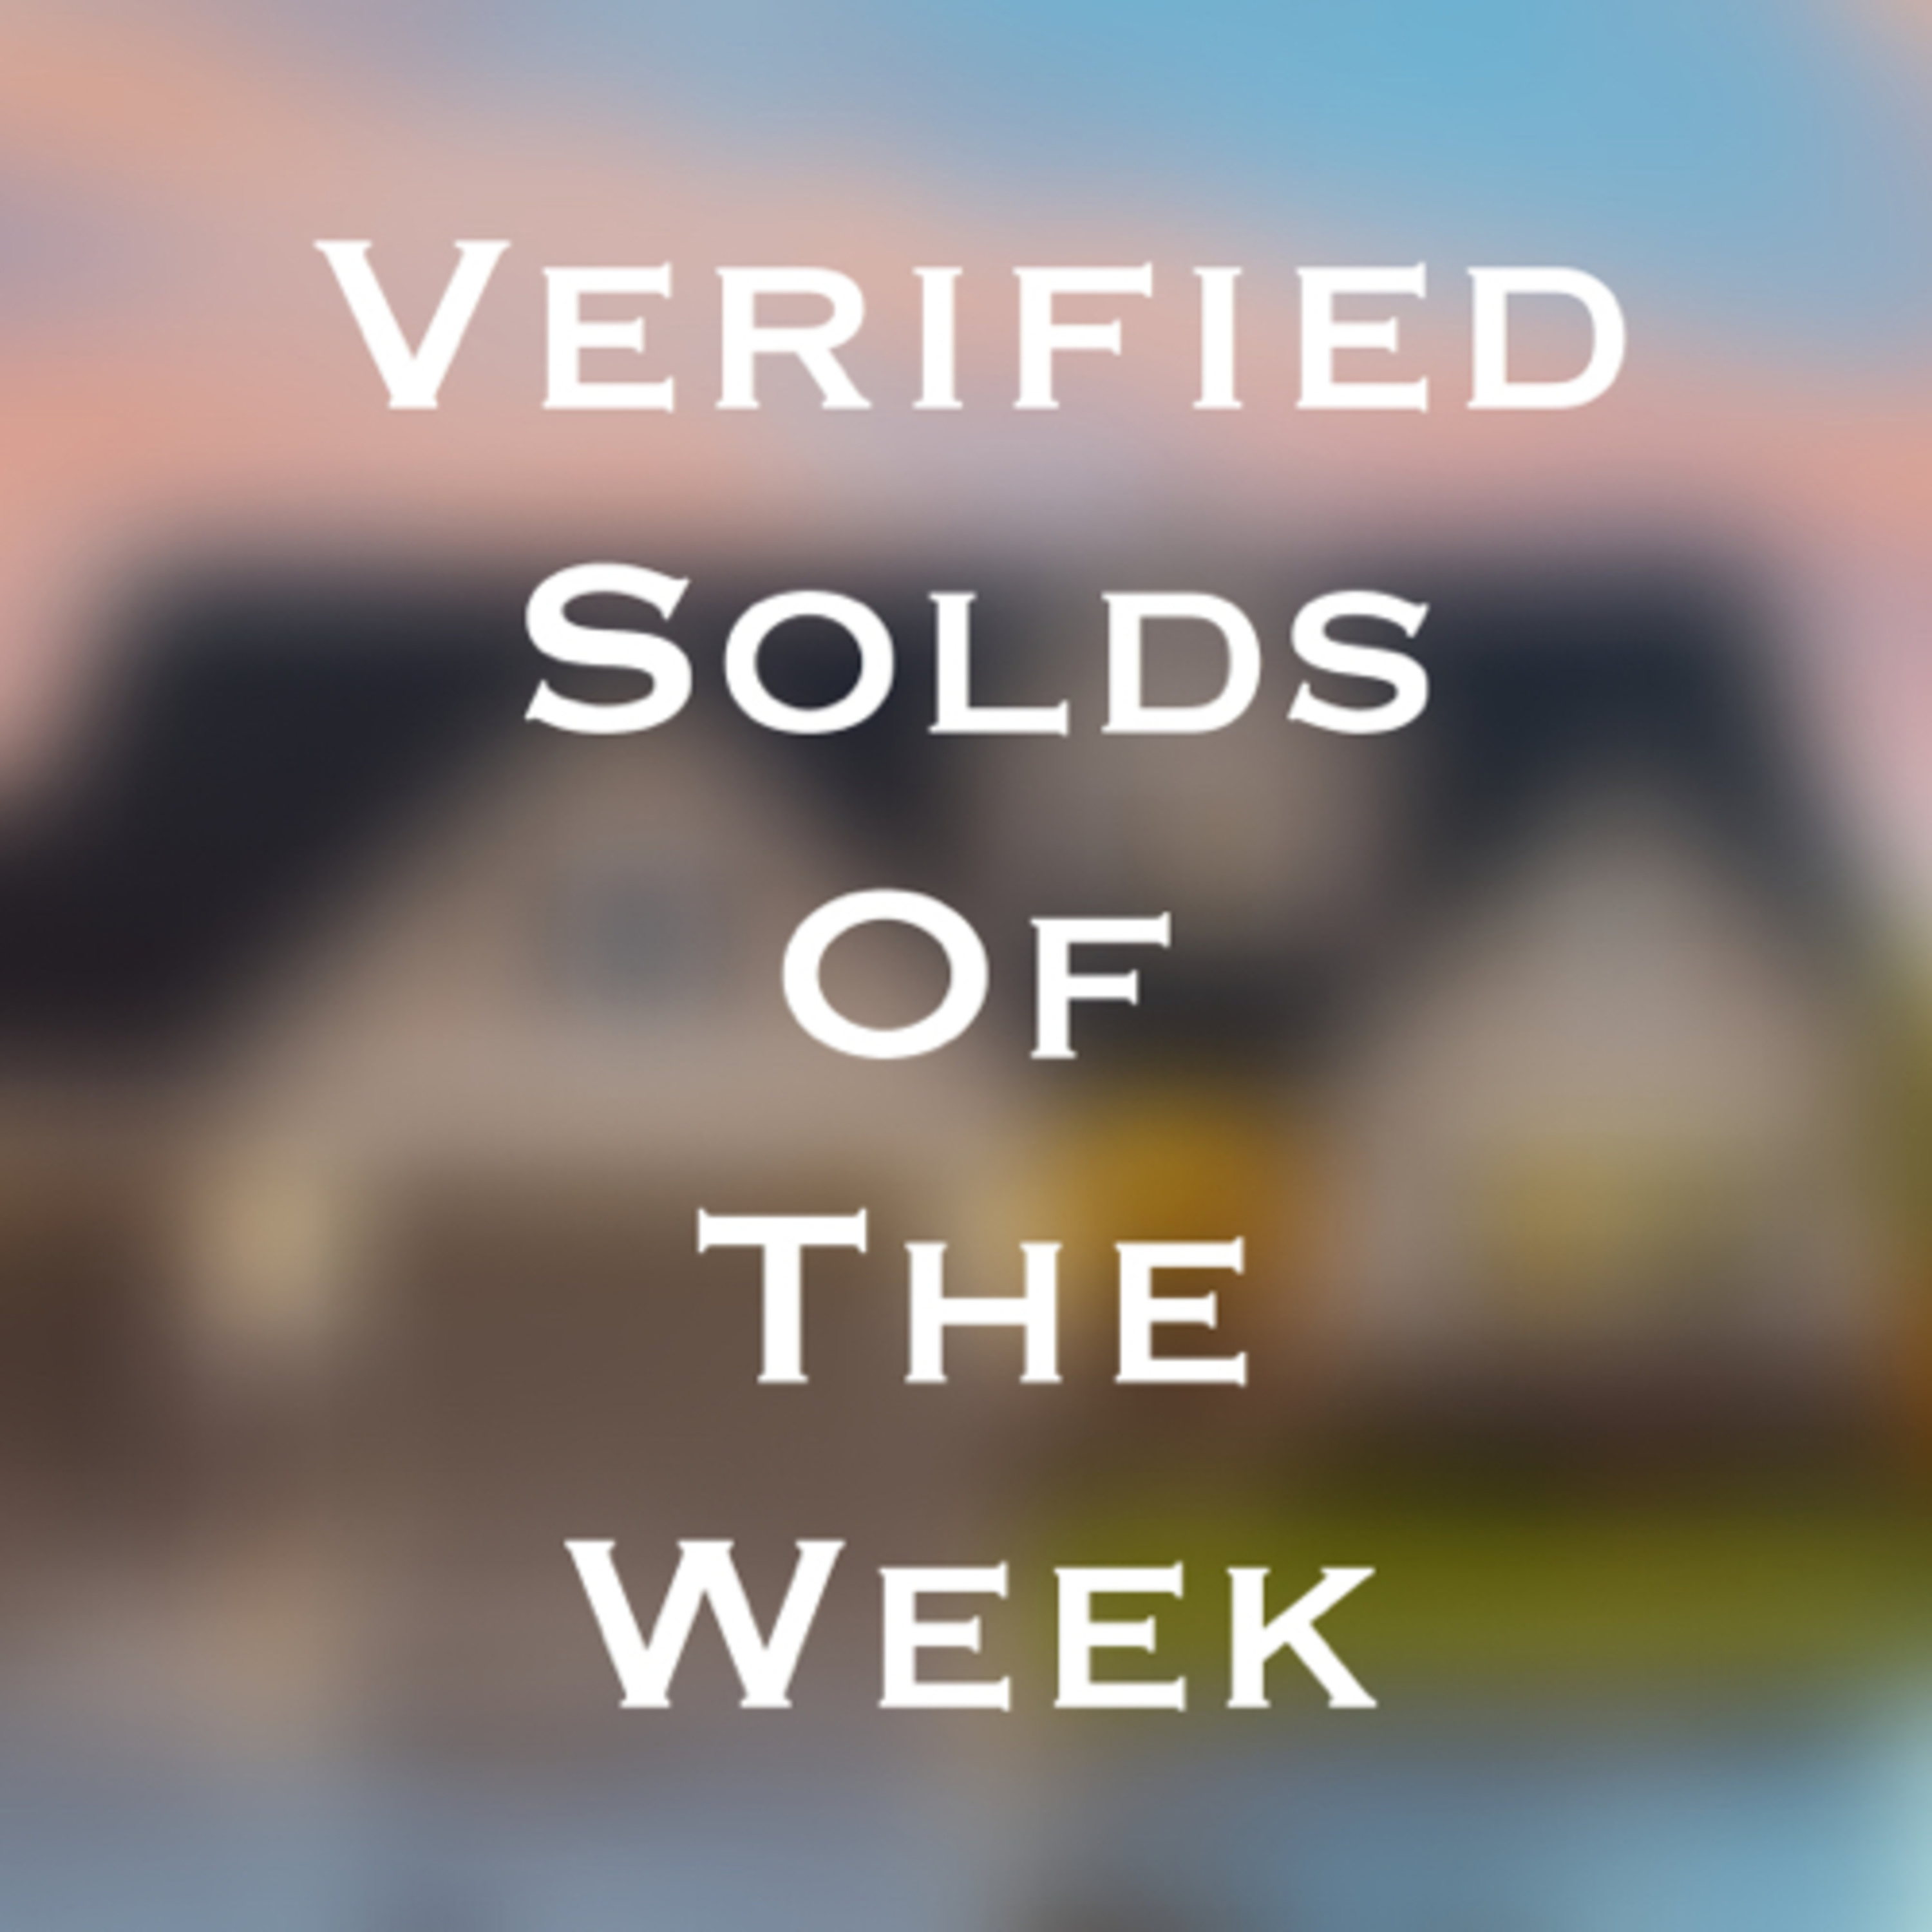 Episode 178: Verified Solds of the Week for Dec 6, 2019